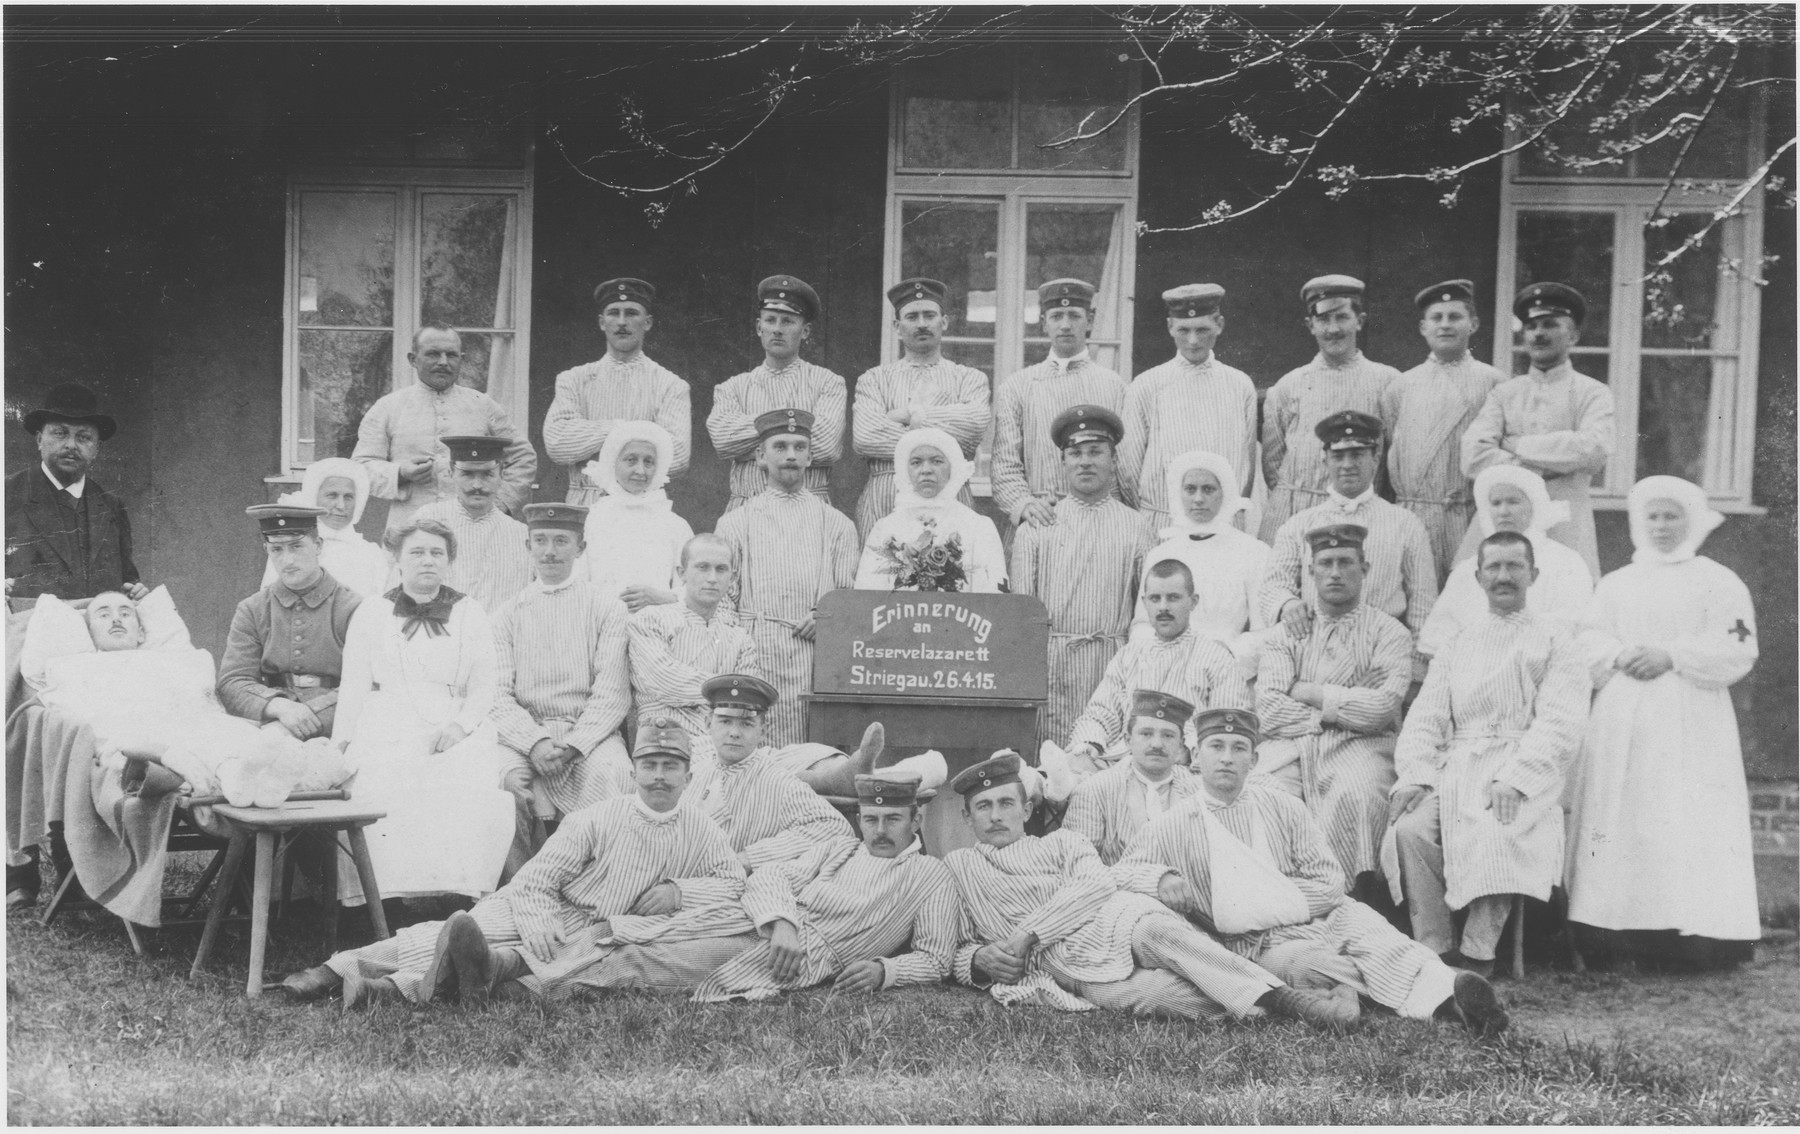 Group portrait of patients and staff of a German military field hospital in Striegau, Germany during WWI.  Among those pictured is Sigbert Loeb, the uncle of Manfred Loeb.